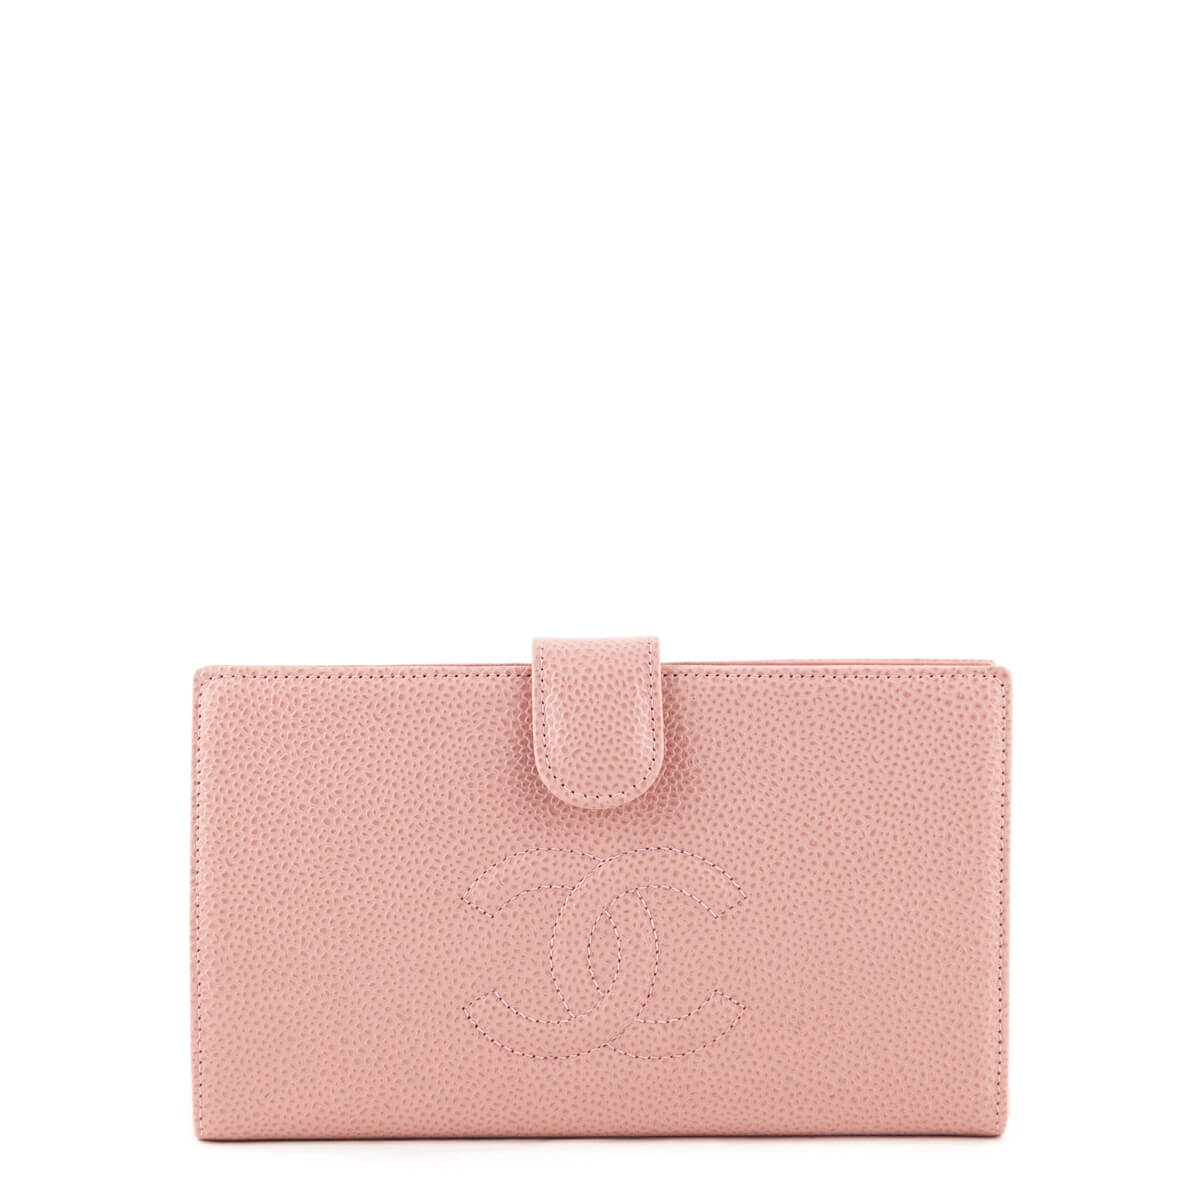 38619a4adafd Chanel Pink Caviar Timeless French Purse Wallet - LOVE that BAG - Preowned  Authentic Designer Handbags ...